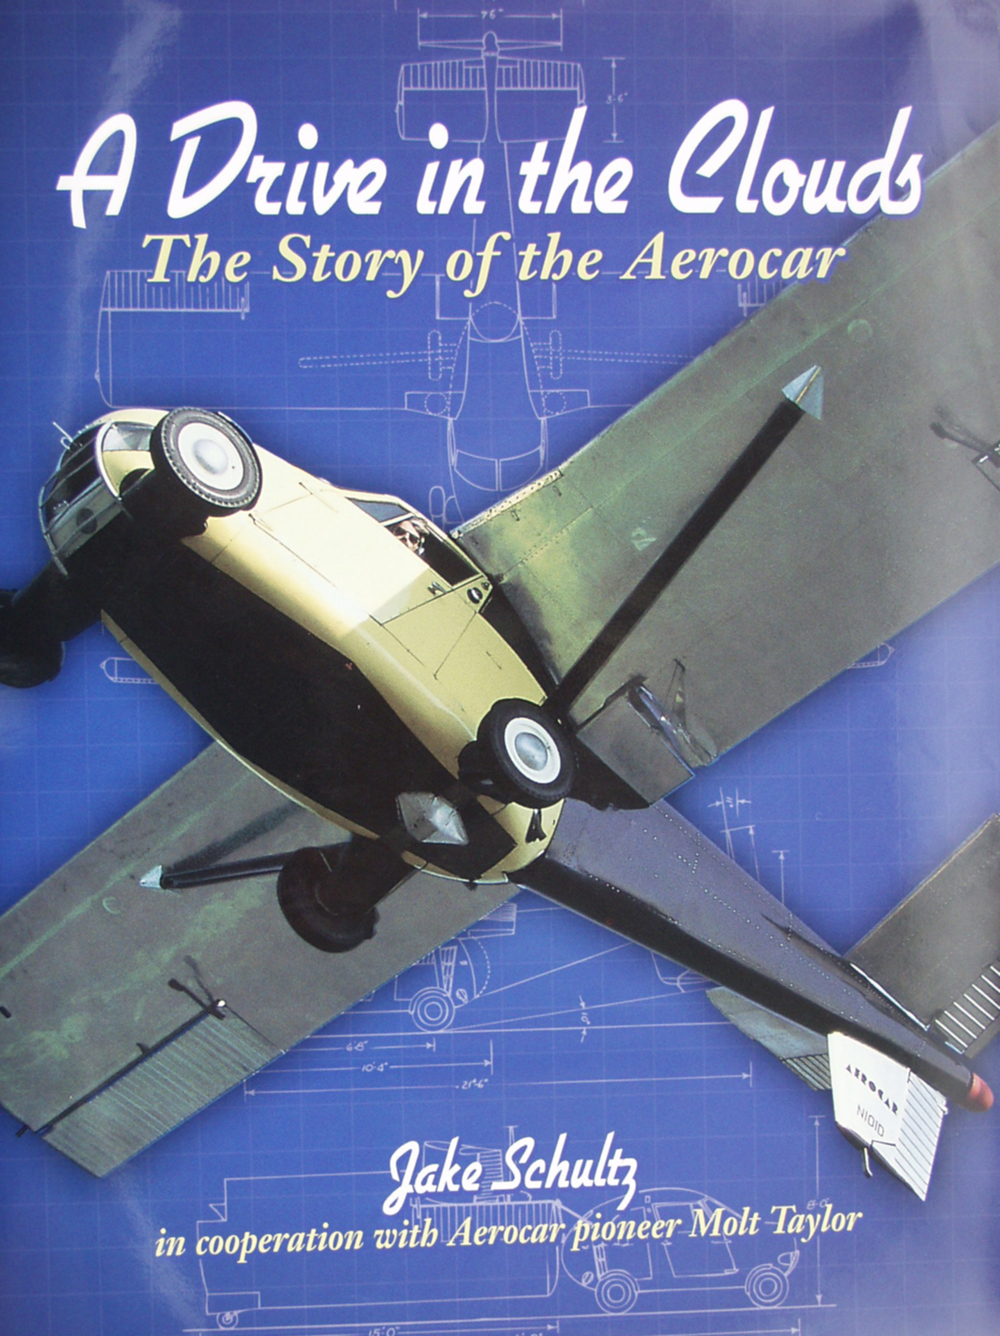 """A Drive in the Clouds"" Captures Aerocar Dream, Inventor Molt Taylor's Amazing Flying Automobile"